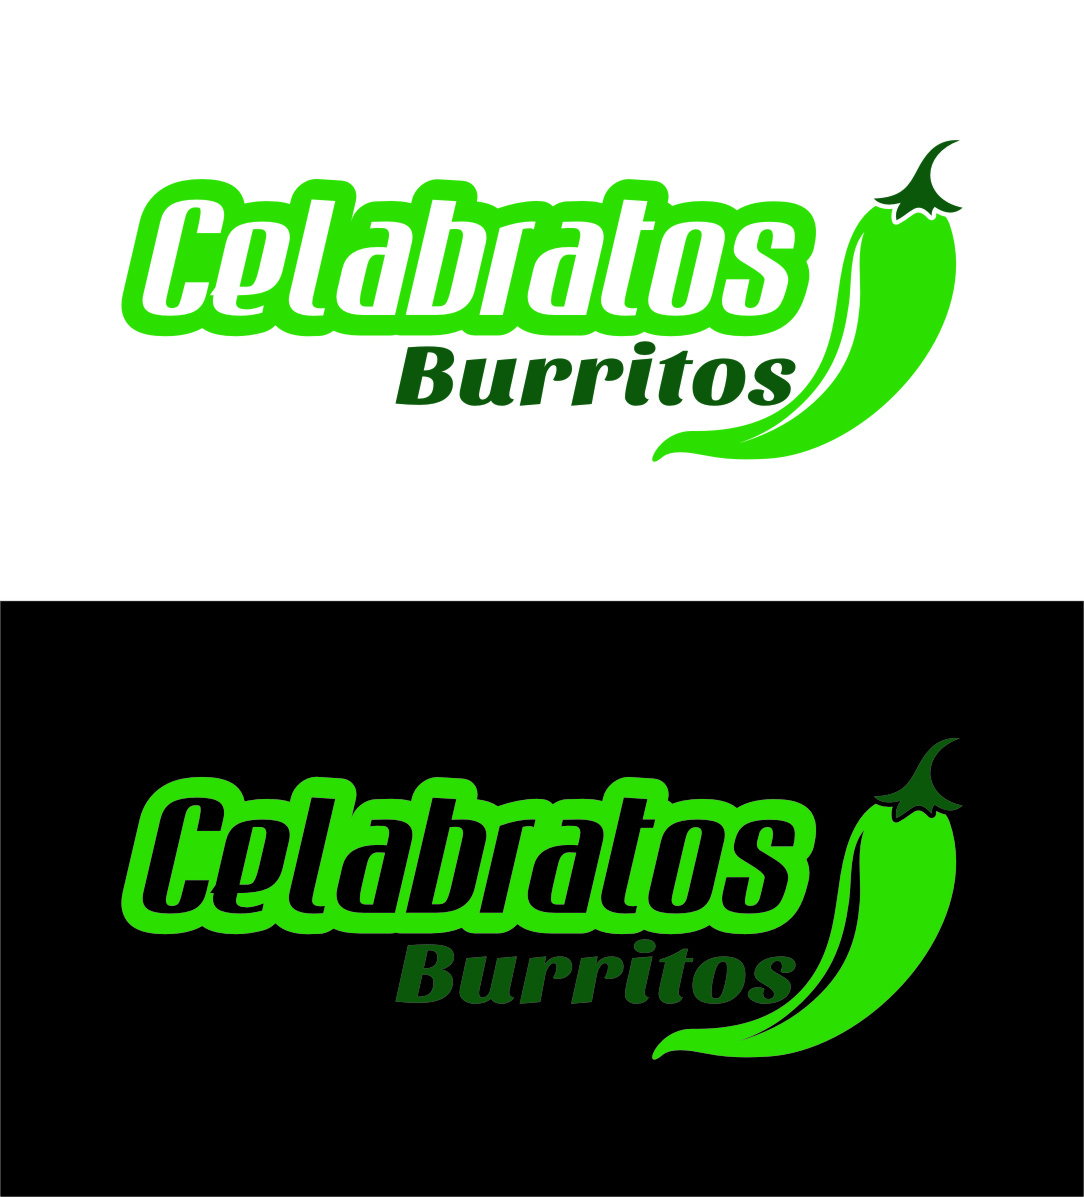 Logo Design by RasYa Muhammad Athaya - Entry No. 100 in the Logo Design Contest Imaginative Logo Design for Celabratos.